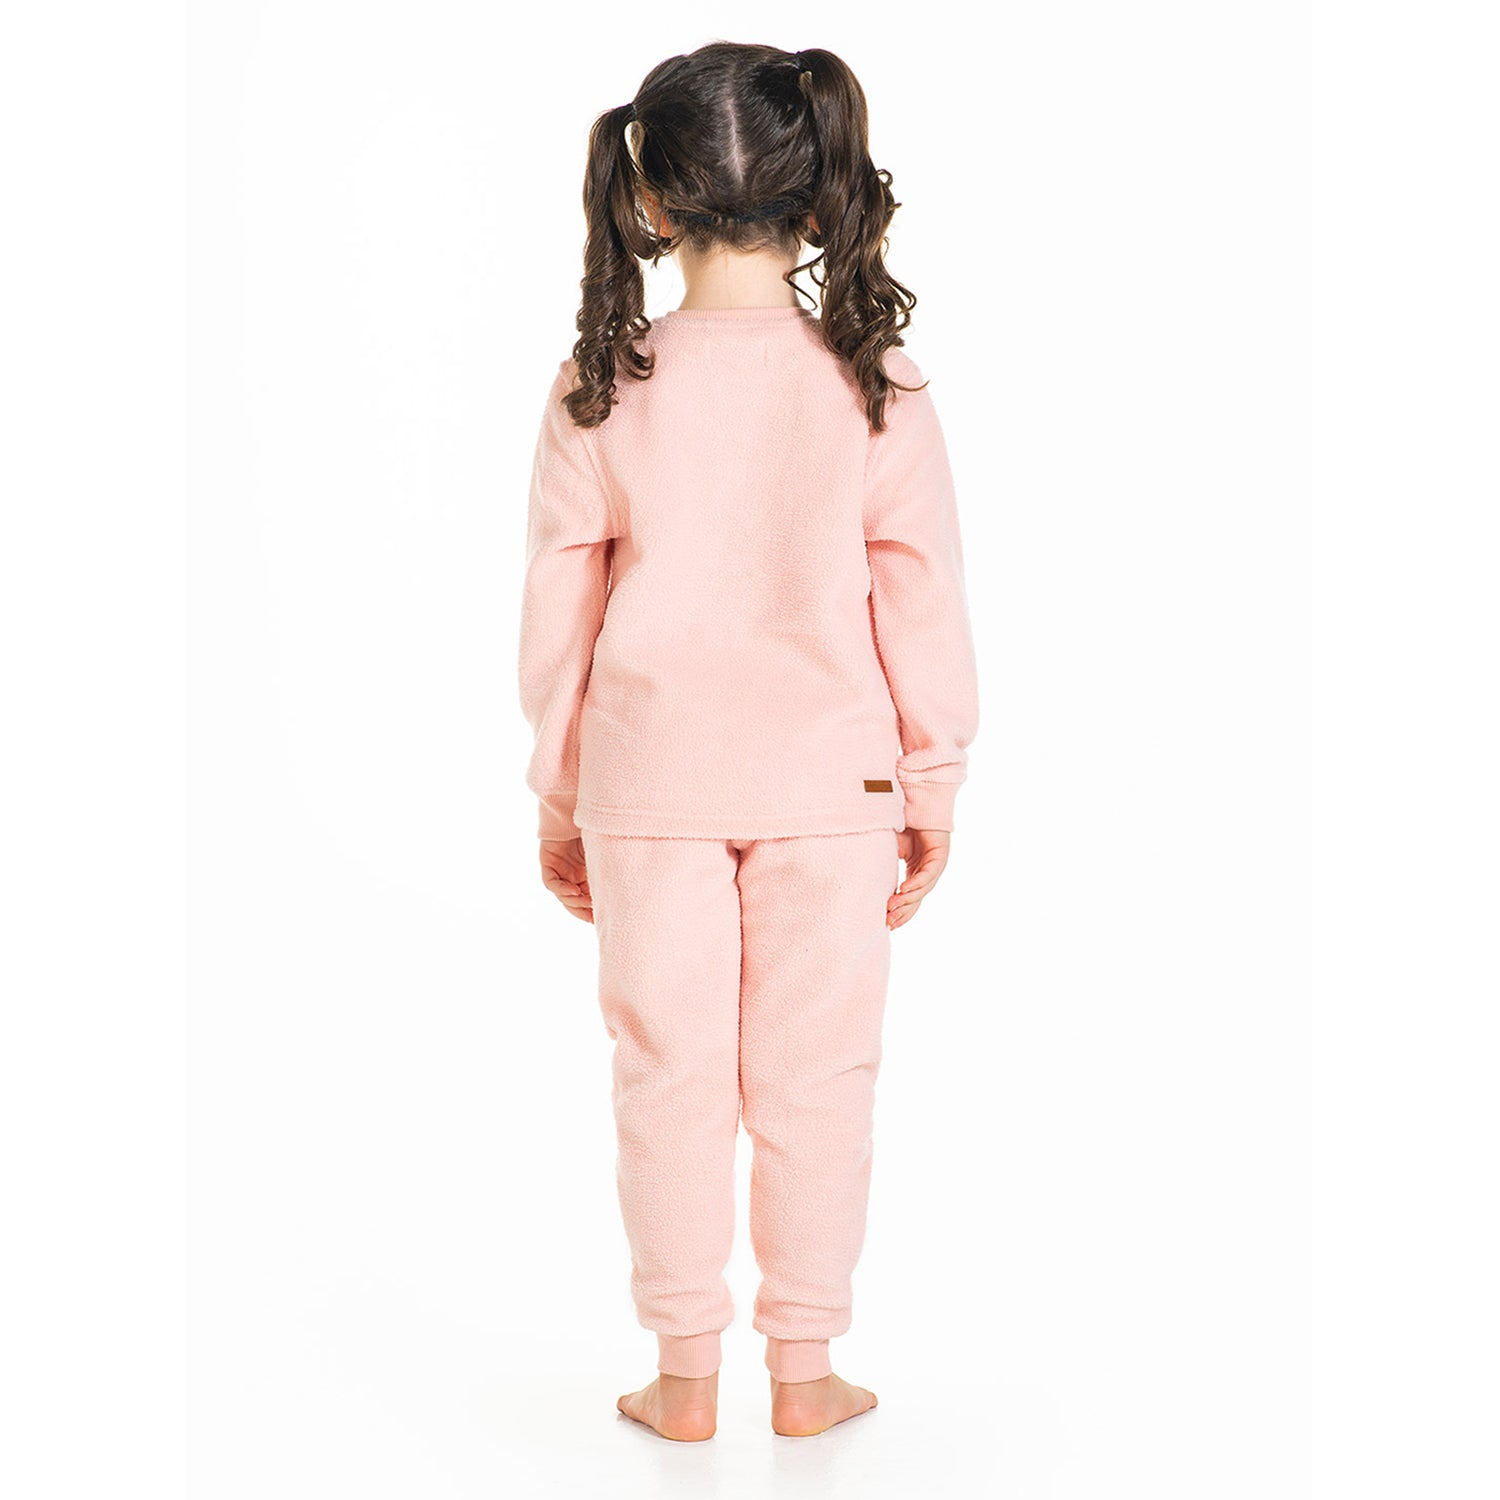 Owl-Applique-Winter-Nightsuit